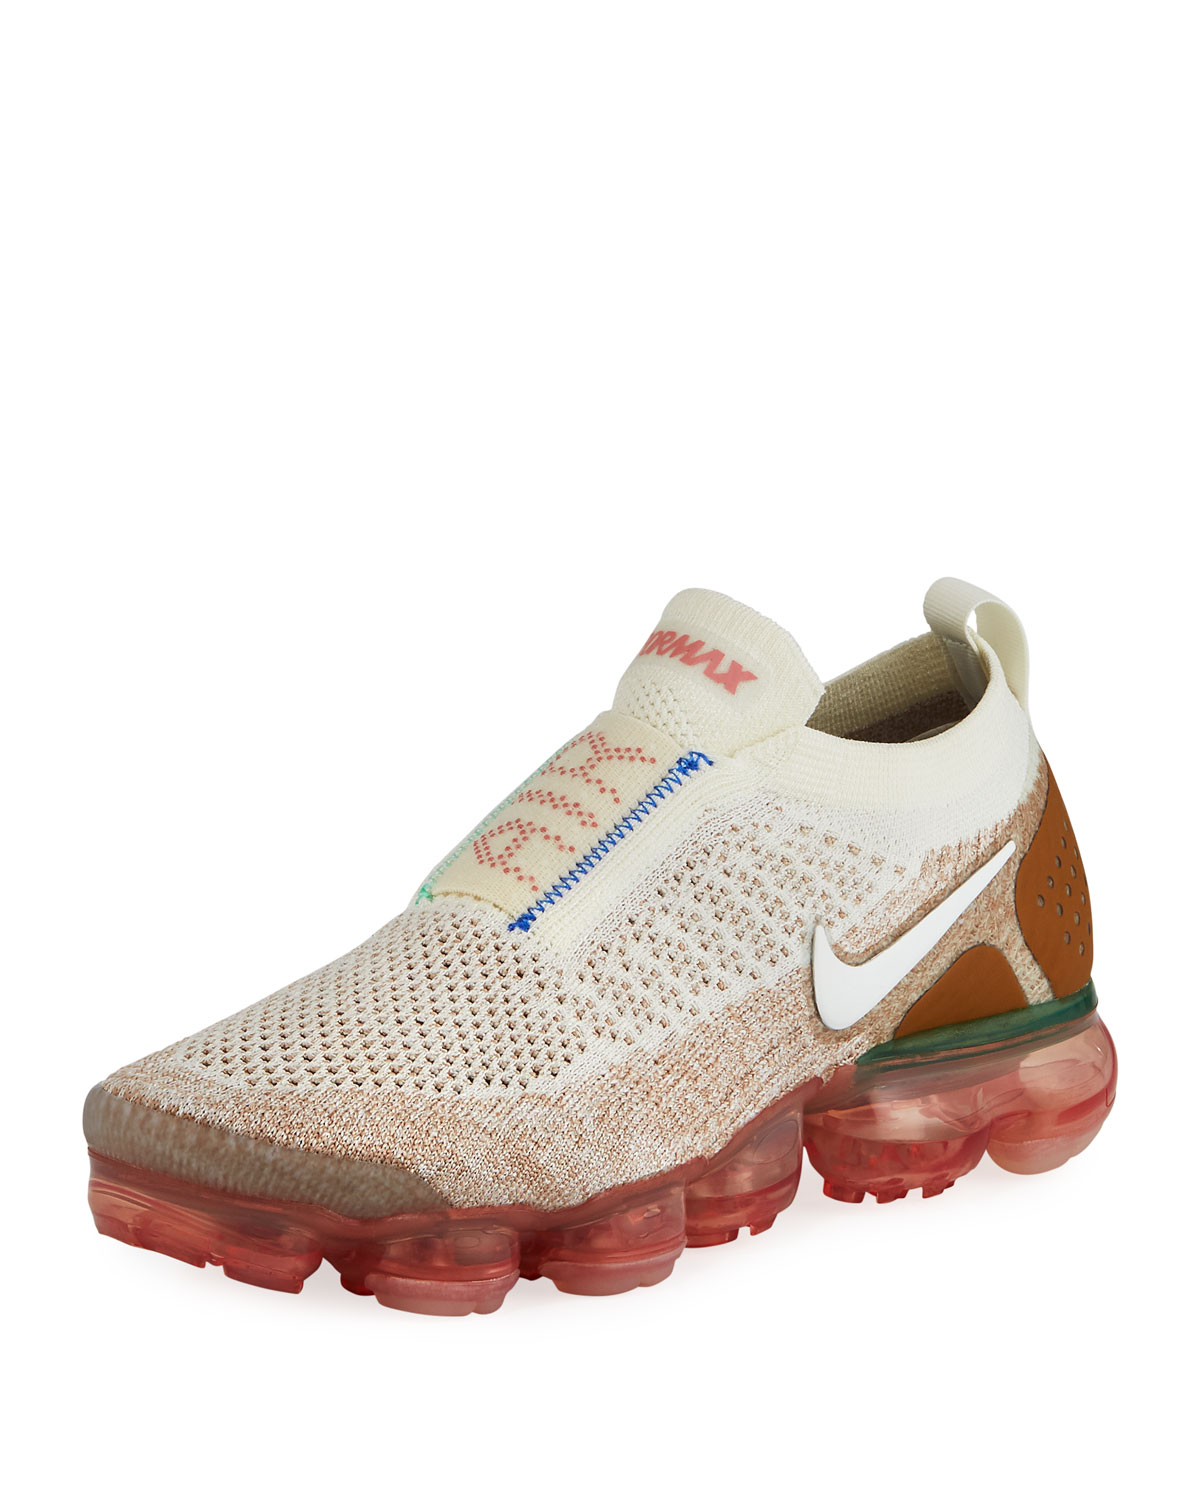 timeless design ac7cd 6f00a NikeAir Vapormax Flyknit Moc 2 Sneakers